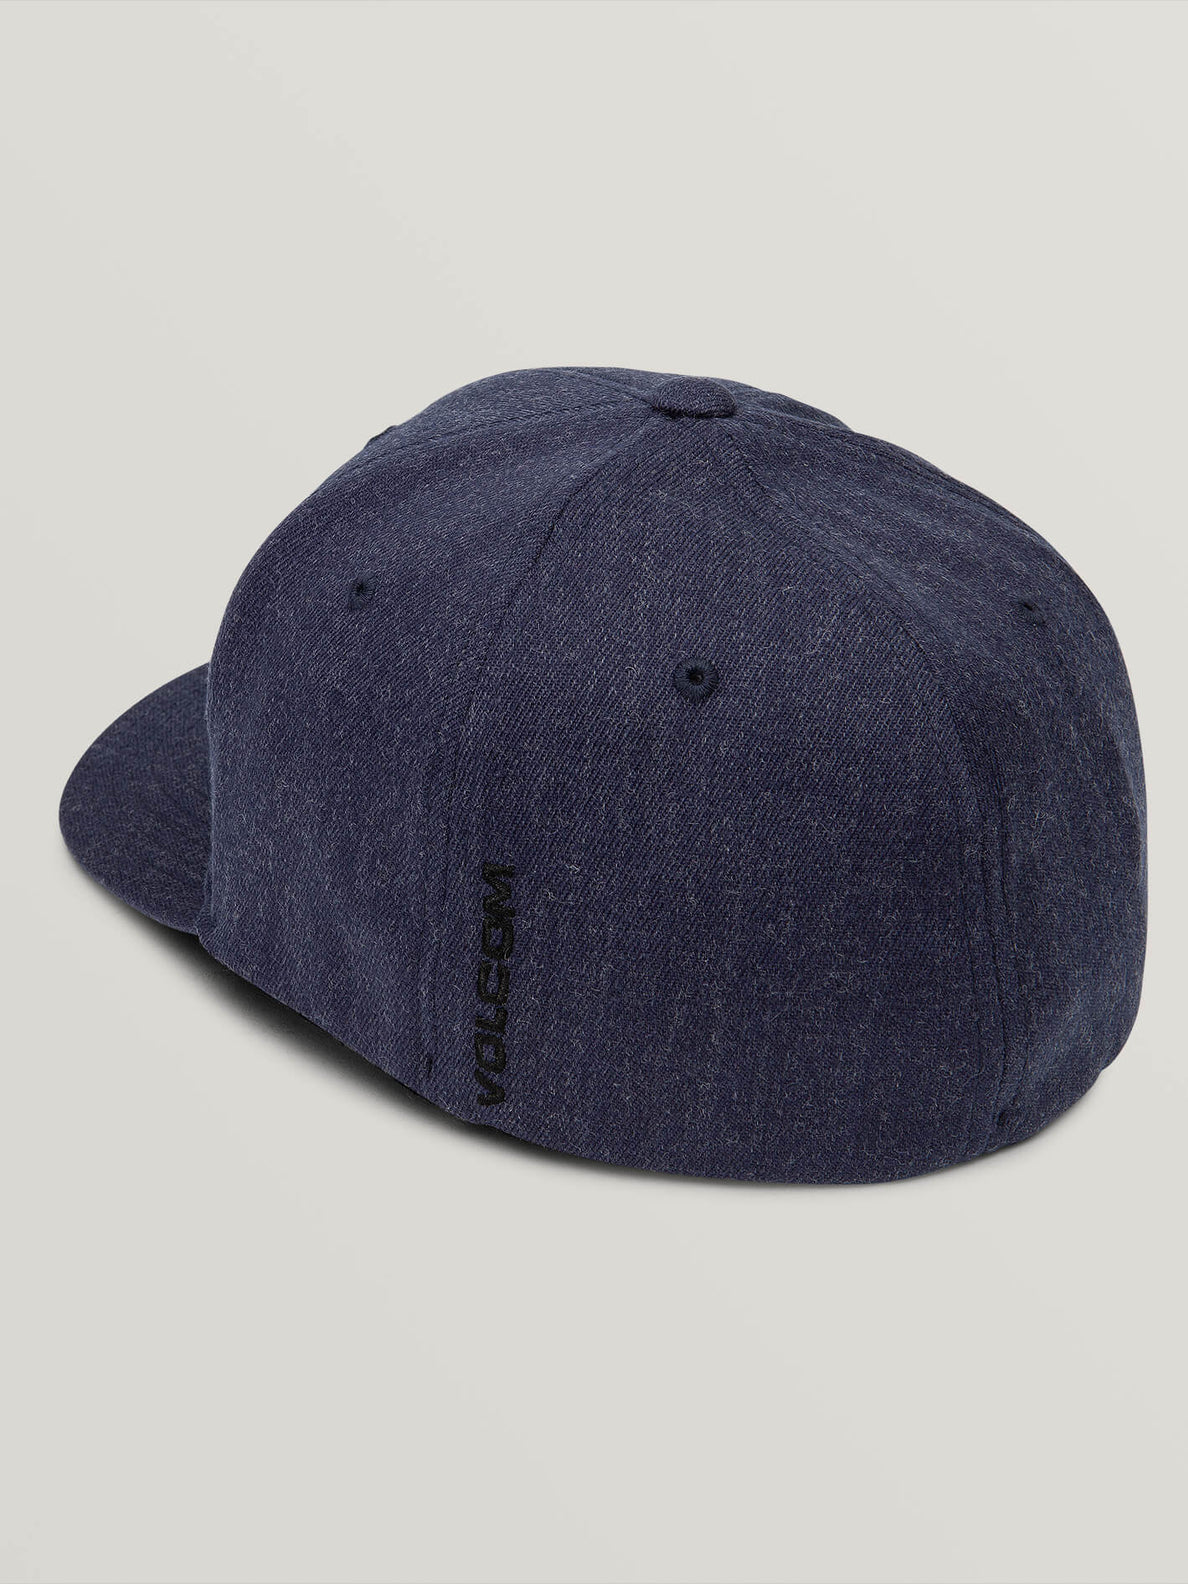 Full Stone Xfit Hat In Navy Heather, Alternate View